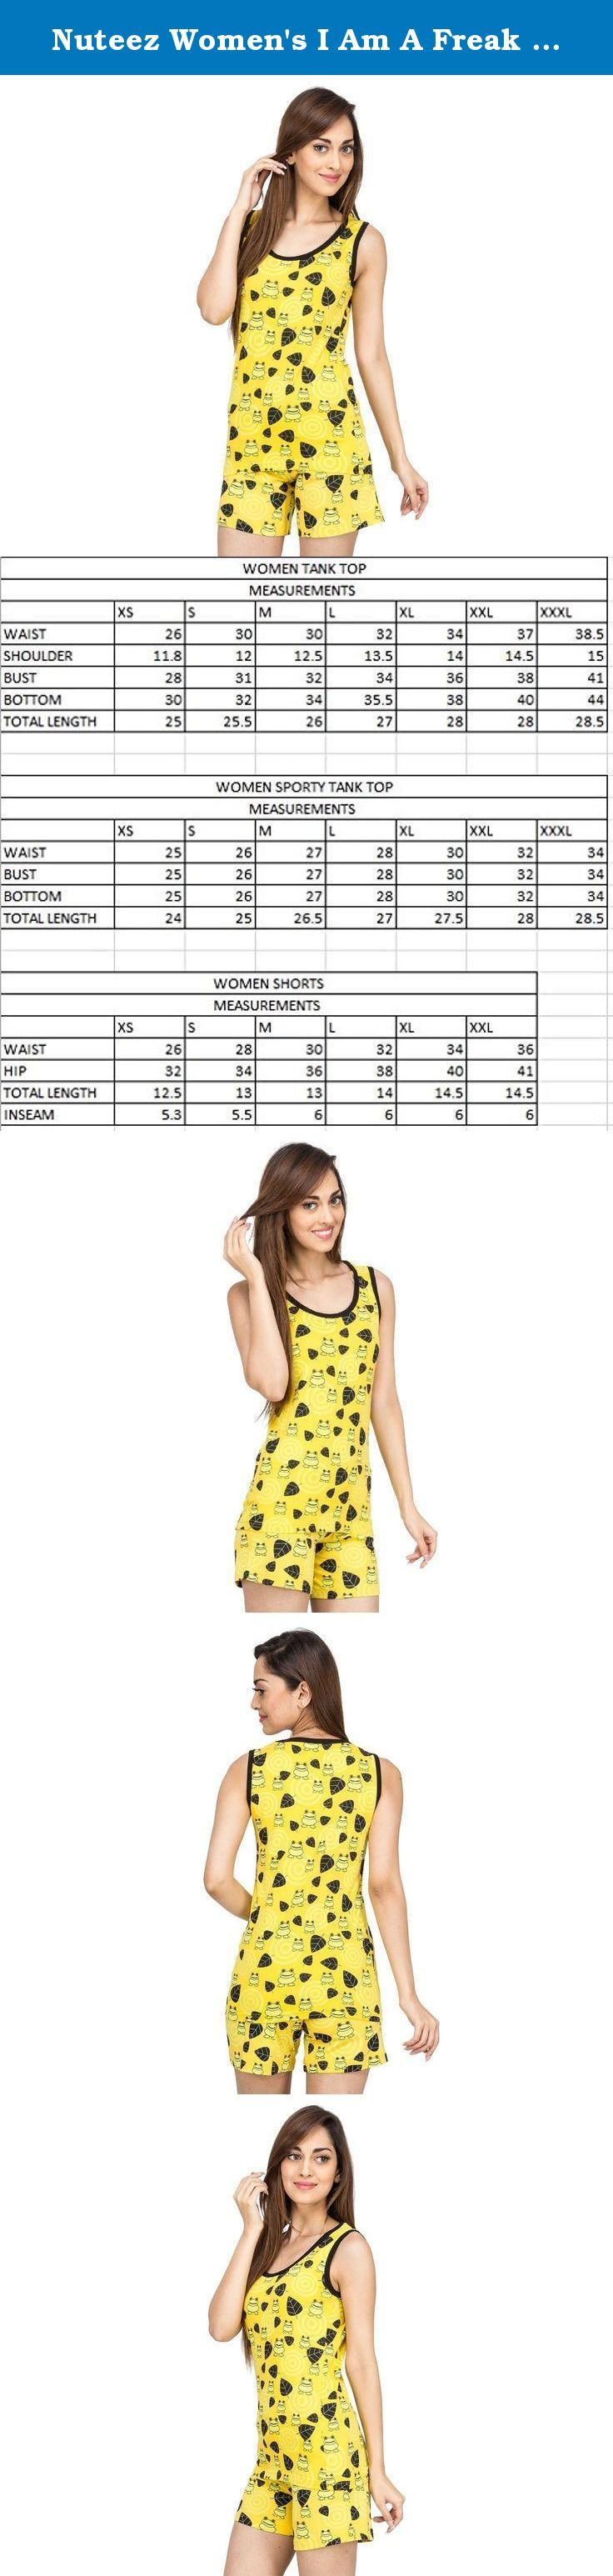 Nuteez Women's I Am A Freak Cotton Tank Top And Shorts Set X-Large Yellow. AOP TANK TOP & SHORTS SET IN 100% COTTON.